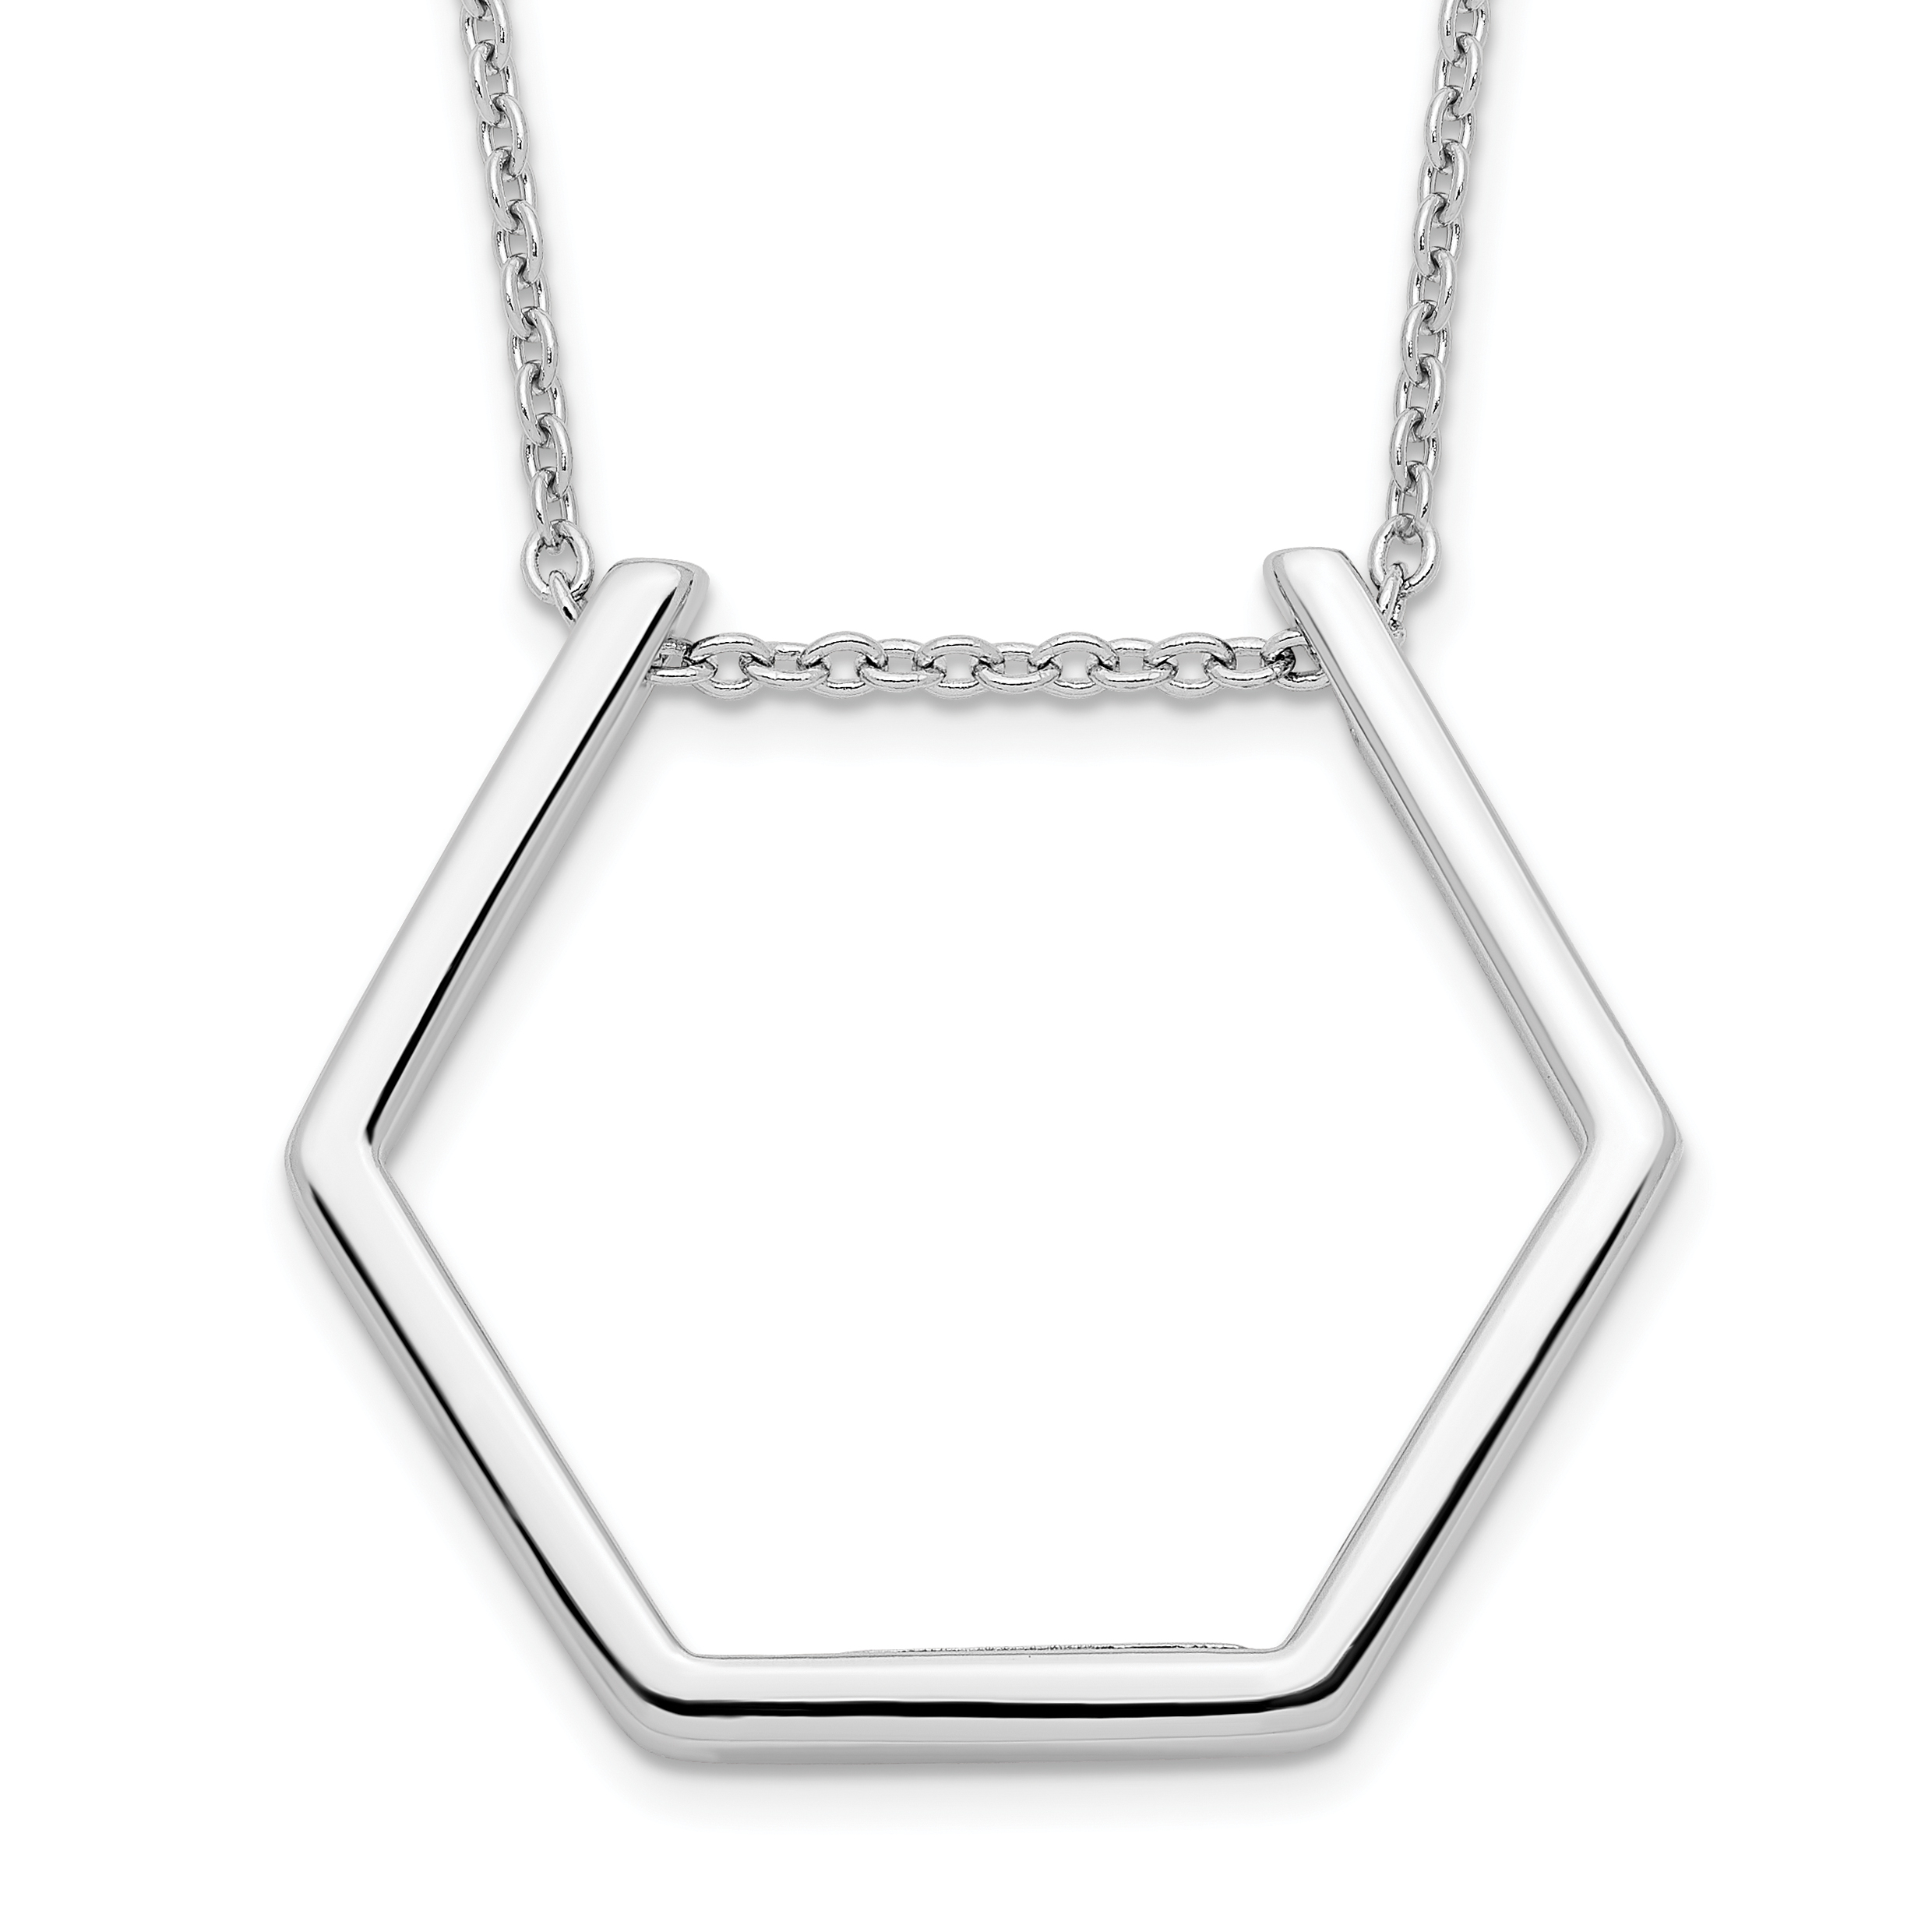 Sterling Silver Rhodium-plated Hexagon Necklace | Weight: 3.08 grams, Length: 18mm, Width: mm